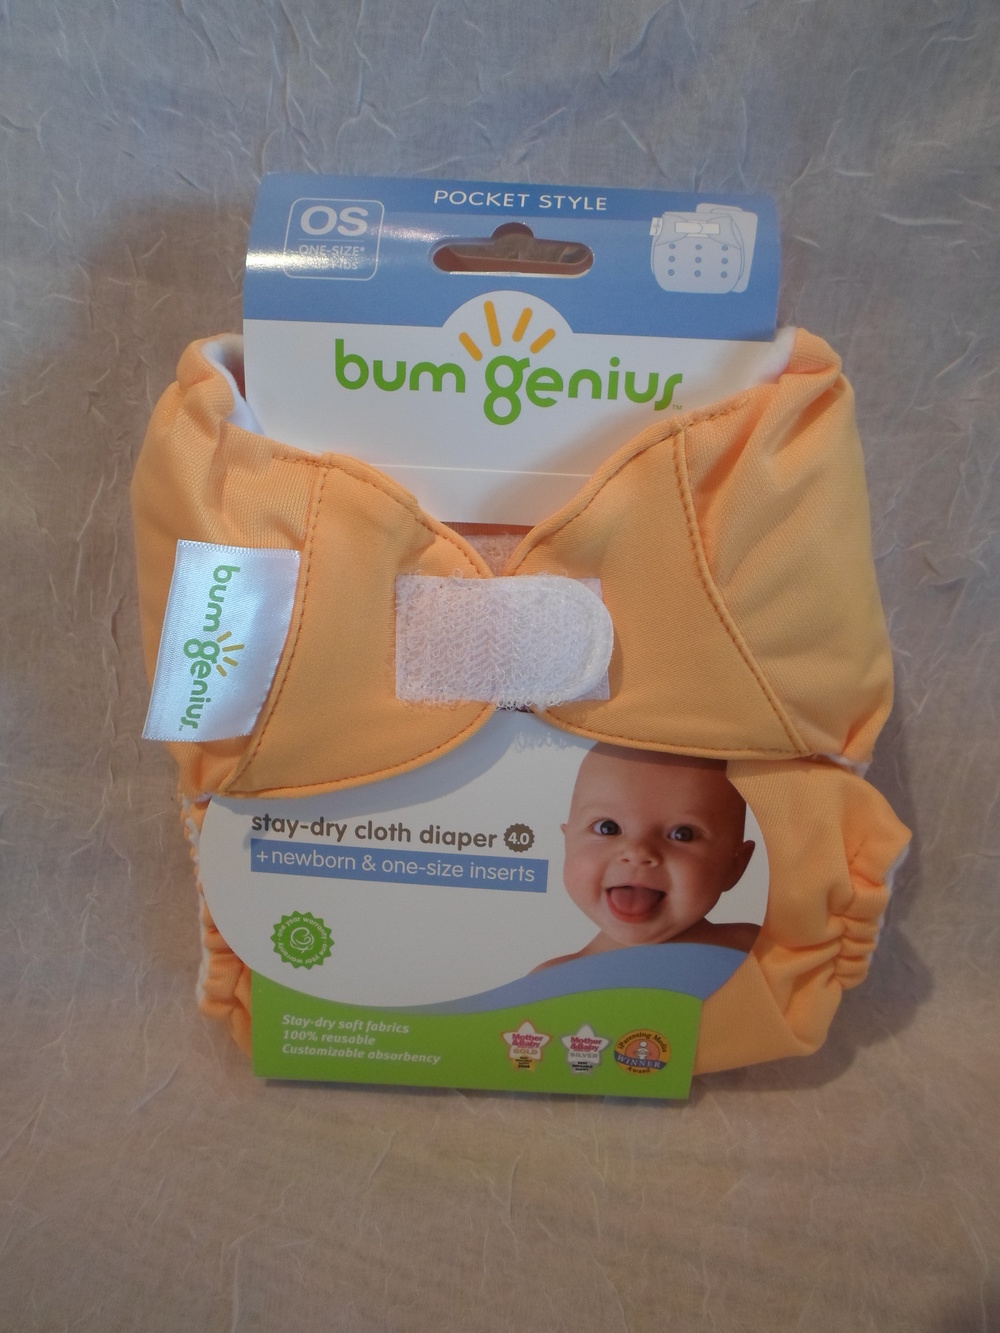 BumGenius One Size Pocket Diaper in orange $17.95 Wants 1 purchased